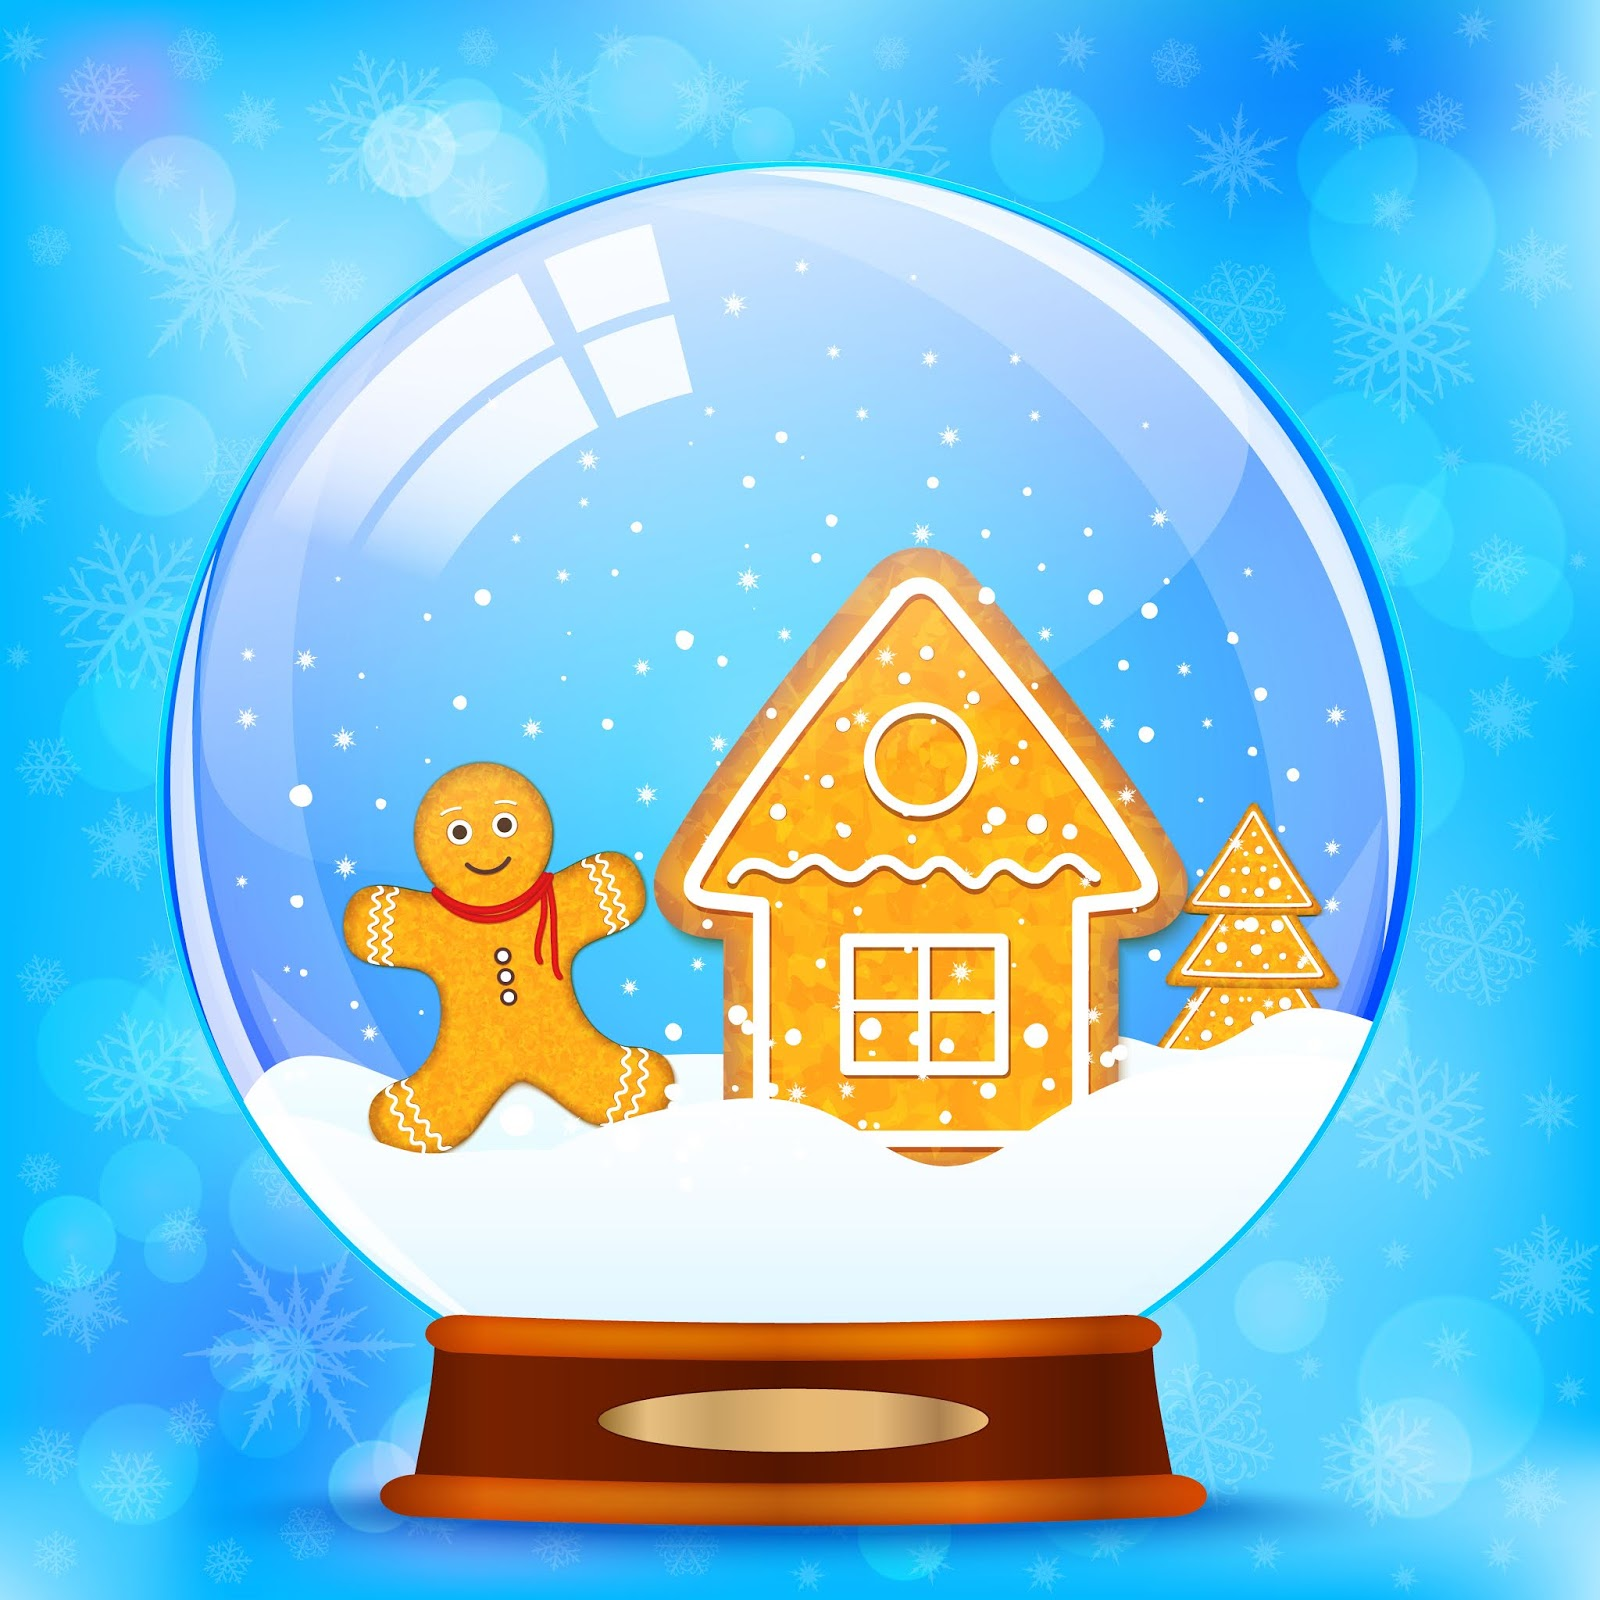 Snow Globe Gingerbread Vector Free Download Vector CDR, AI, EPS and PNG Formats